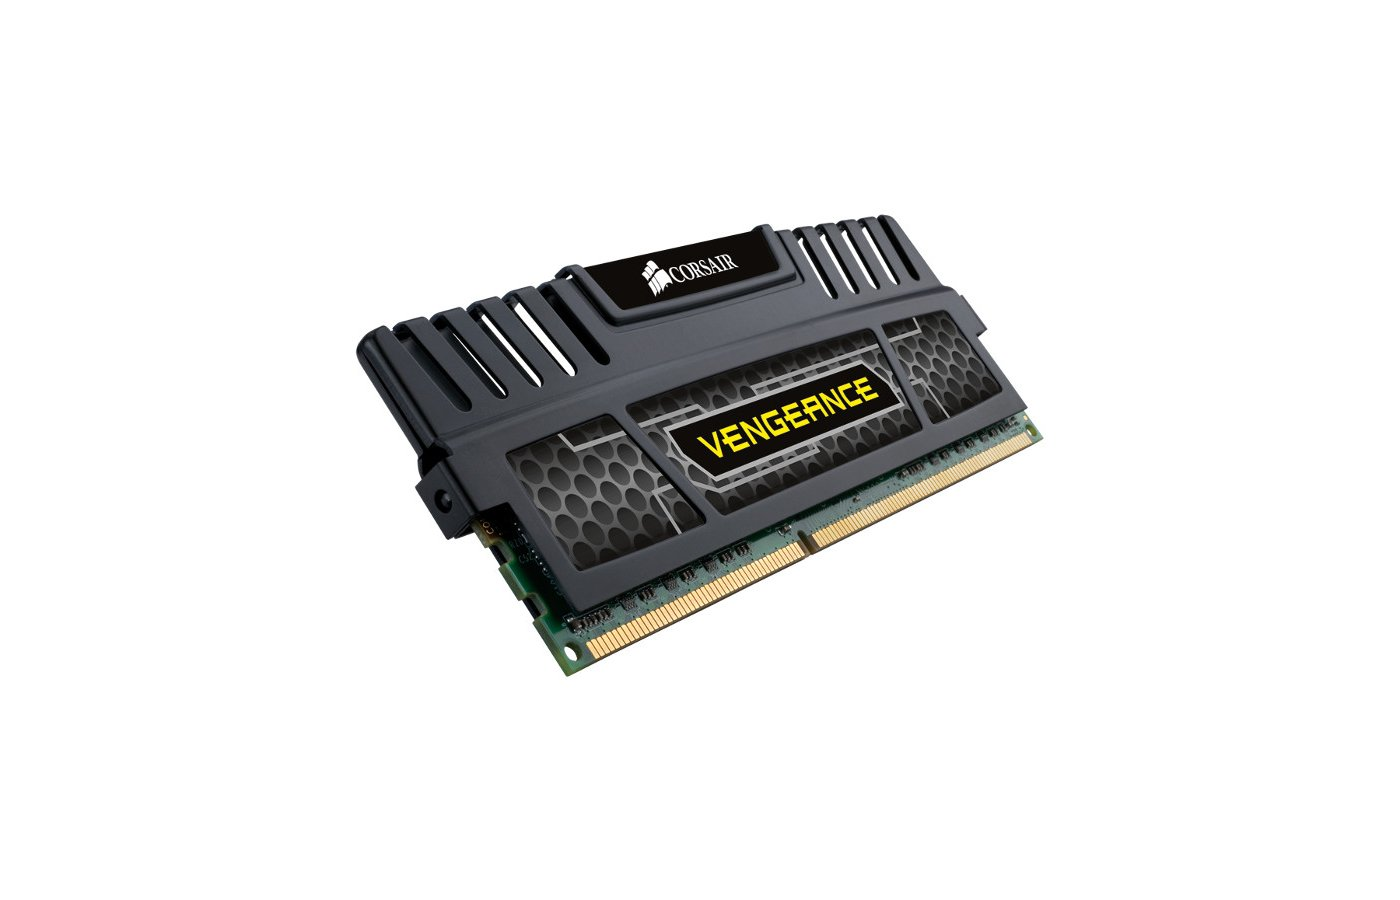 Оперативная память Corsair CMZ4GX3M1A1600C9 RTL PC3-12800 DDR3 4Gb 1600MHz CL9